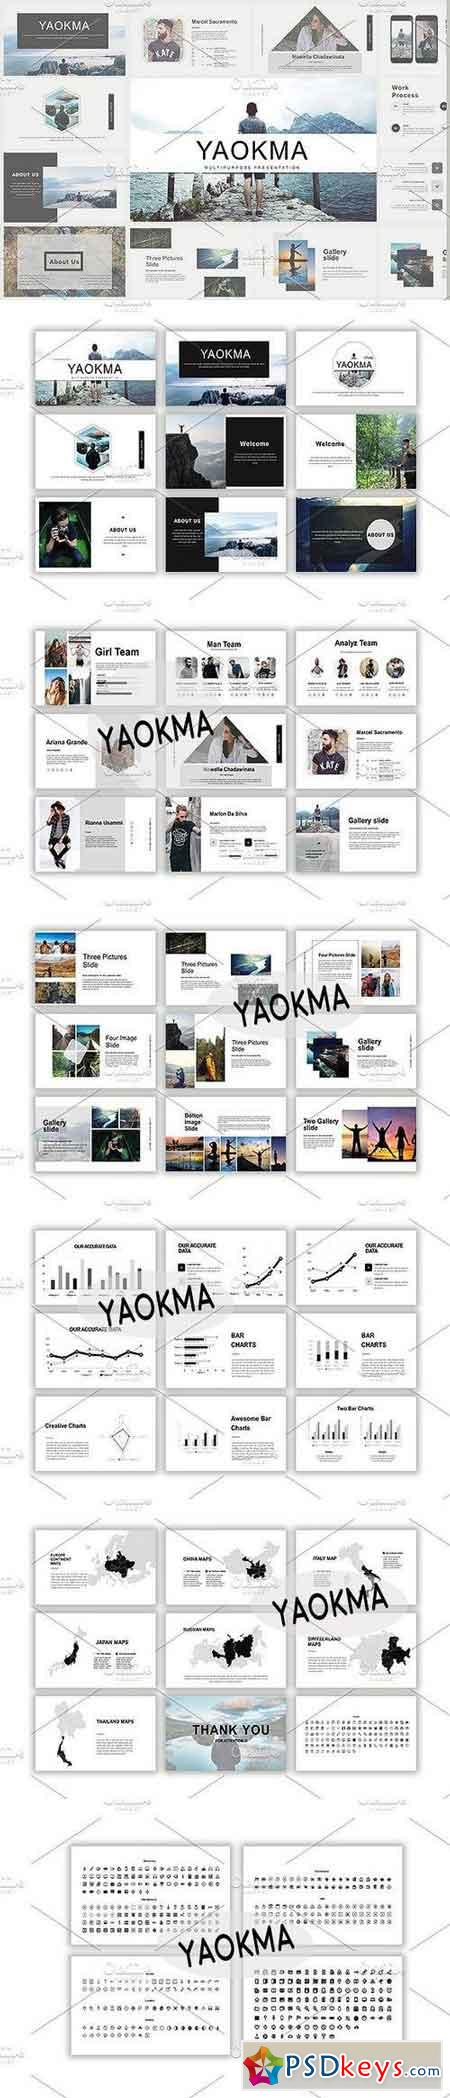 Yaokma Powerpoint Template 1458085